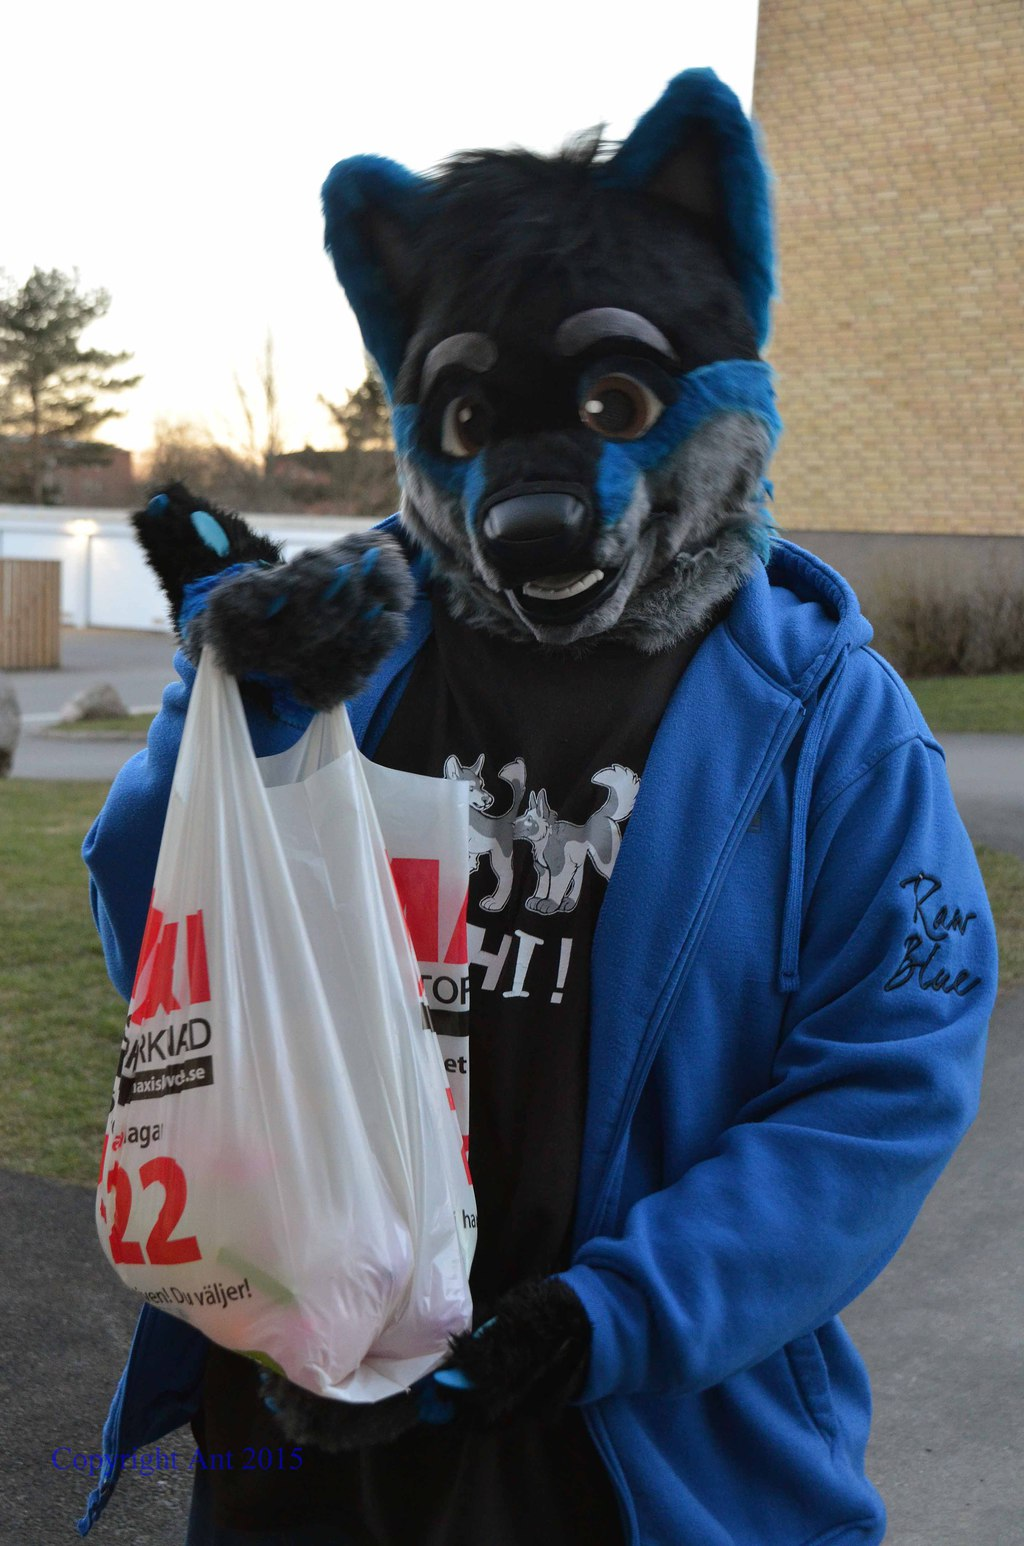 Most recent image: OHH! Shopping!